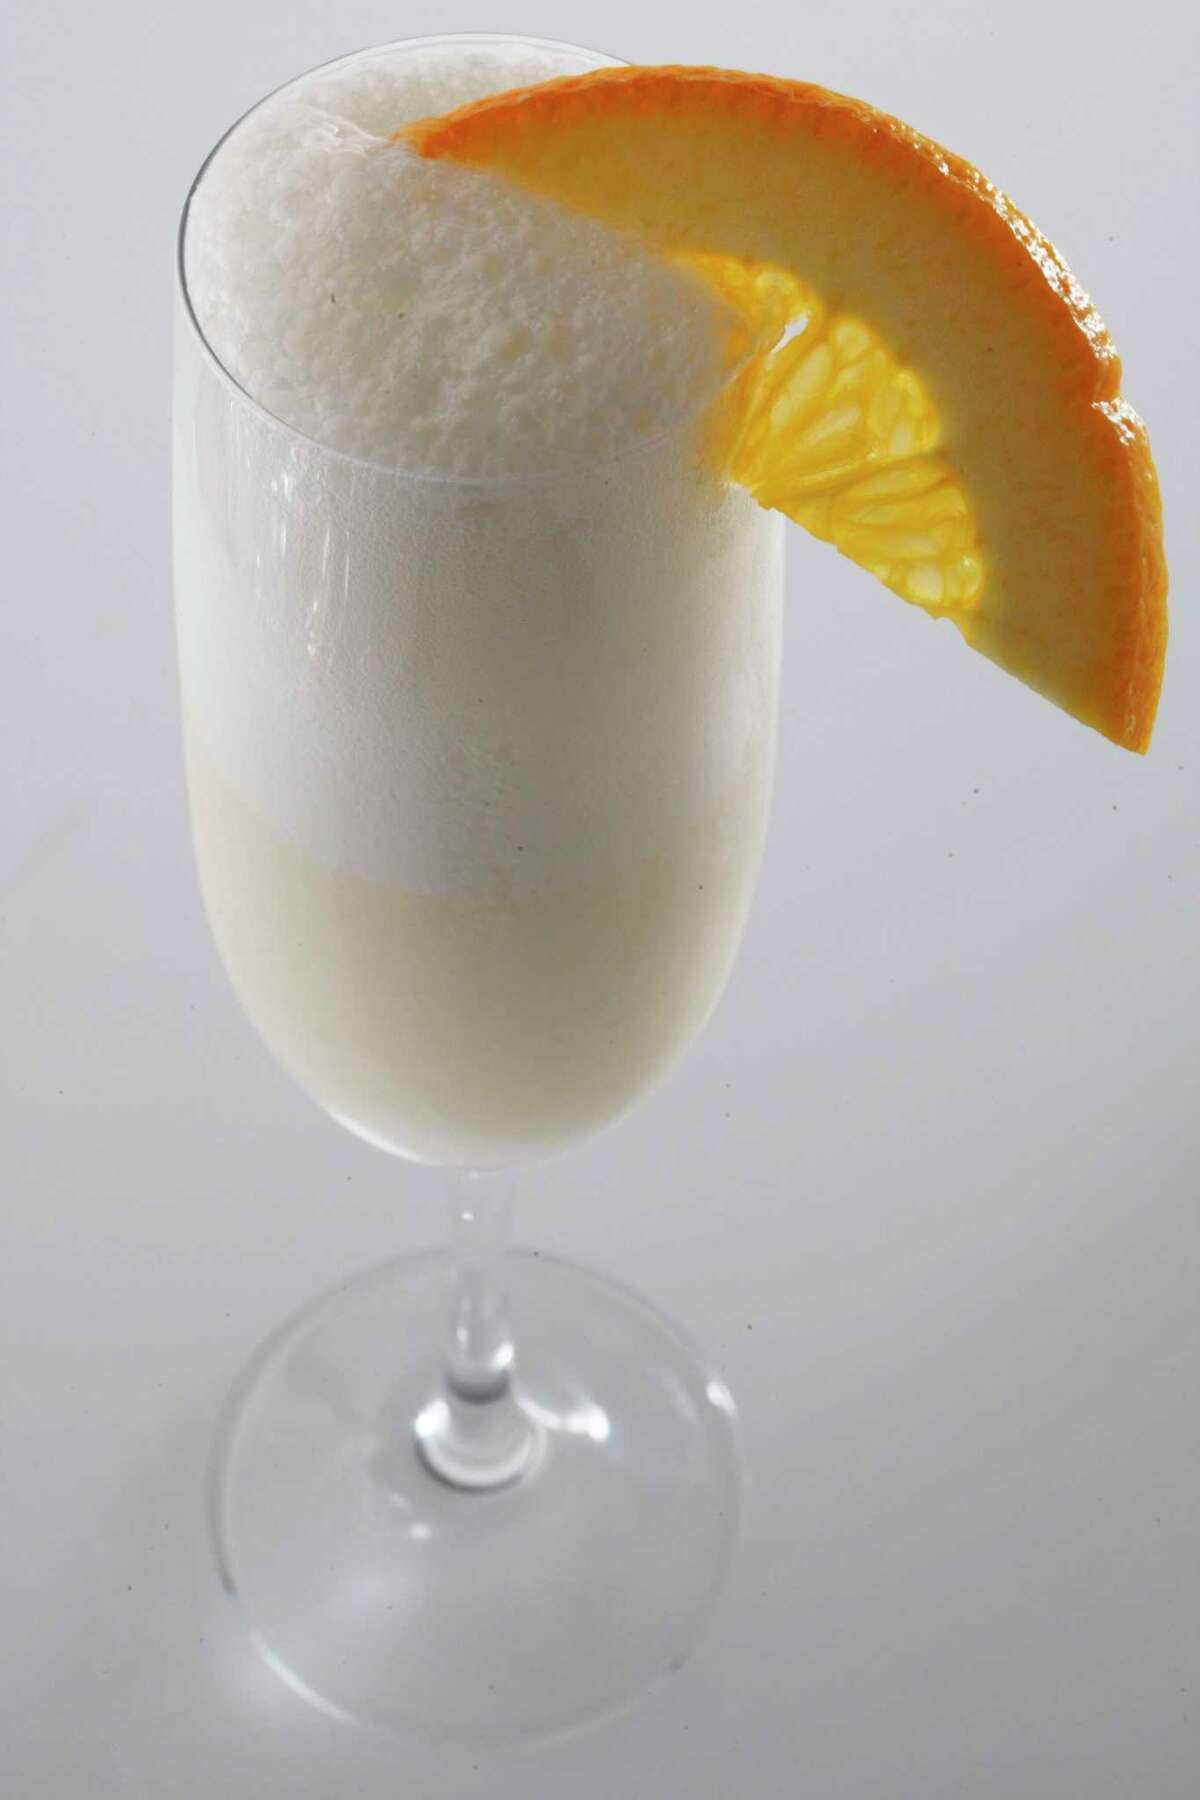 A Ramos Gin Fizz is one of the 10 essential cocktails everyone who entertains should know how to make.